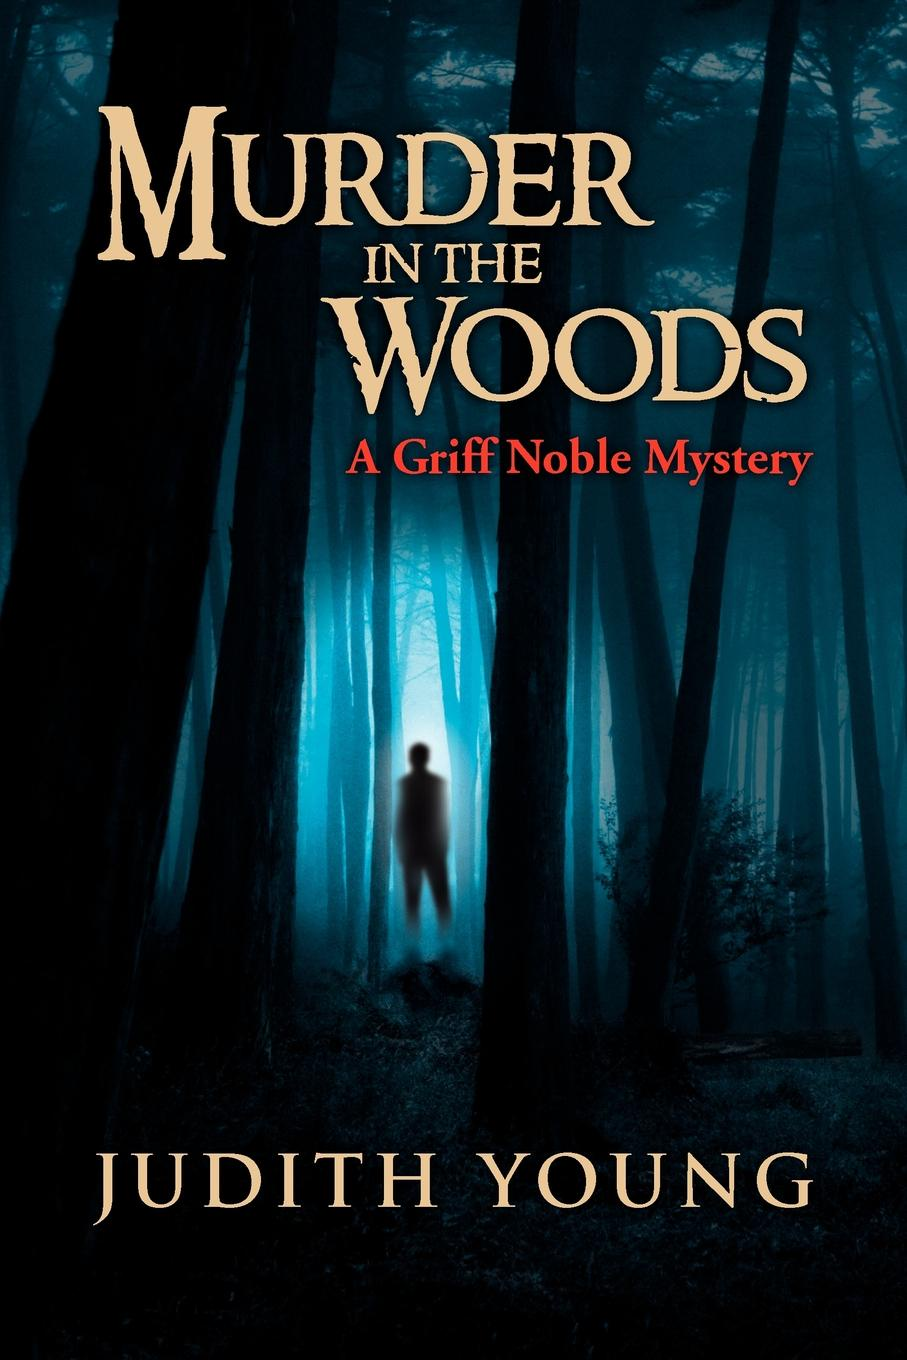 лучшая цена Judith Young Murder in the Woods. A Griff Noble Mystery